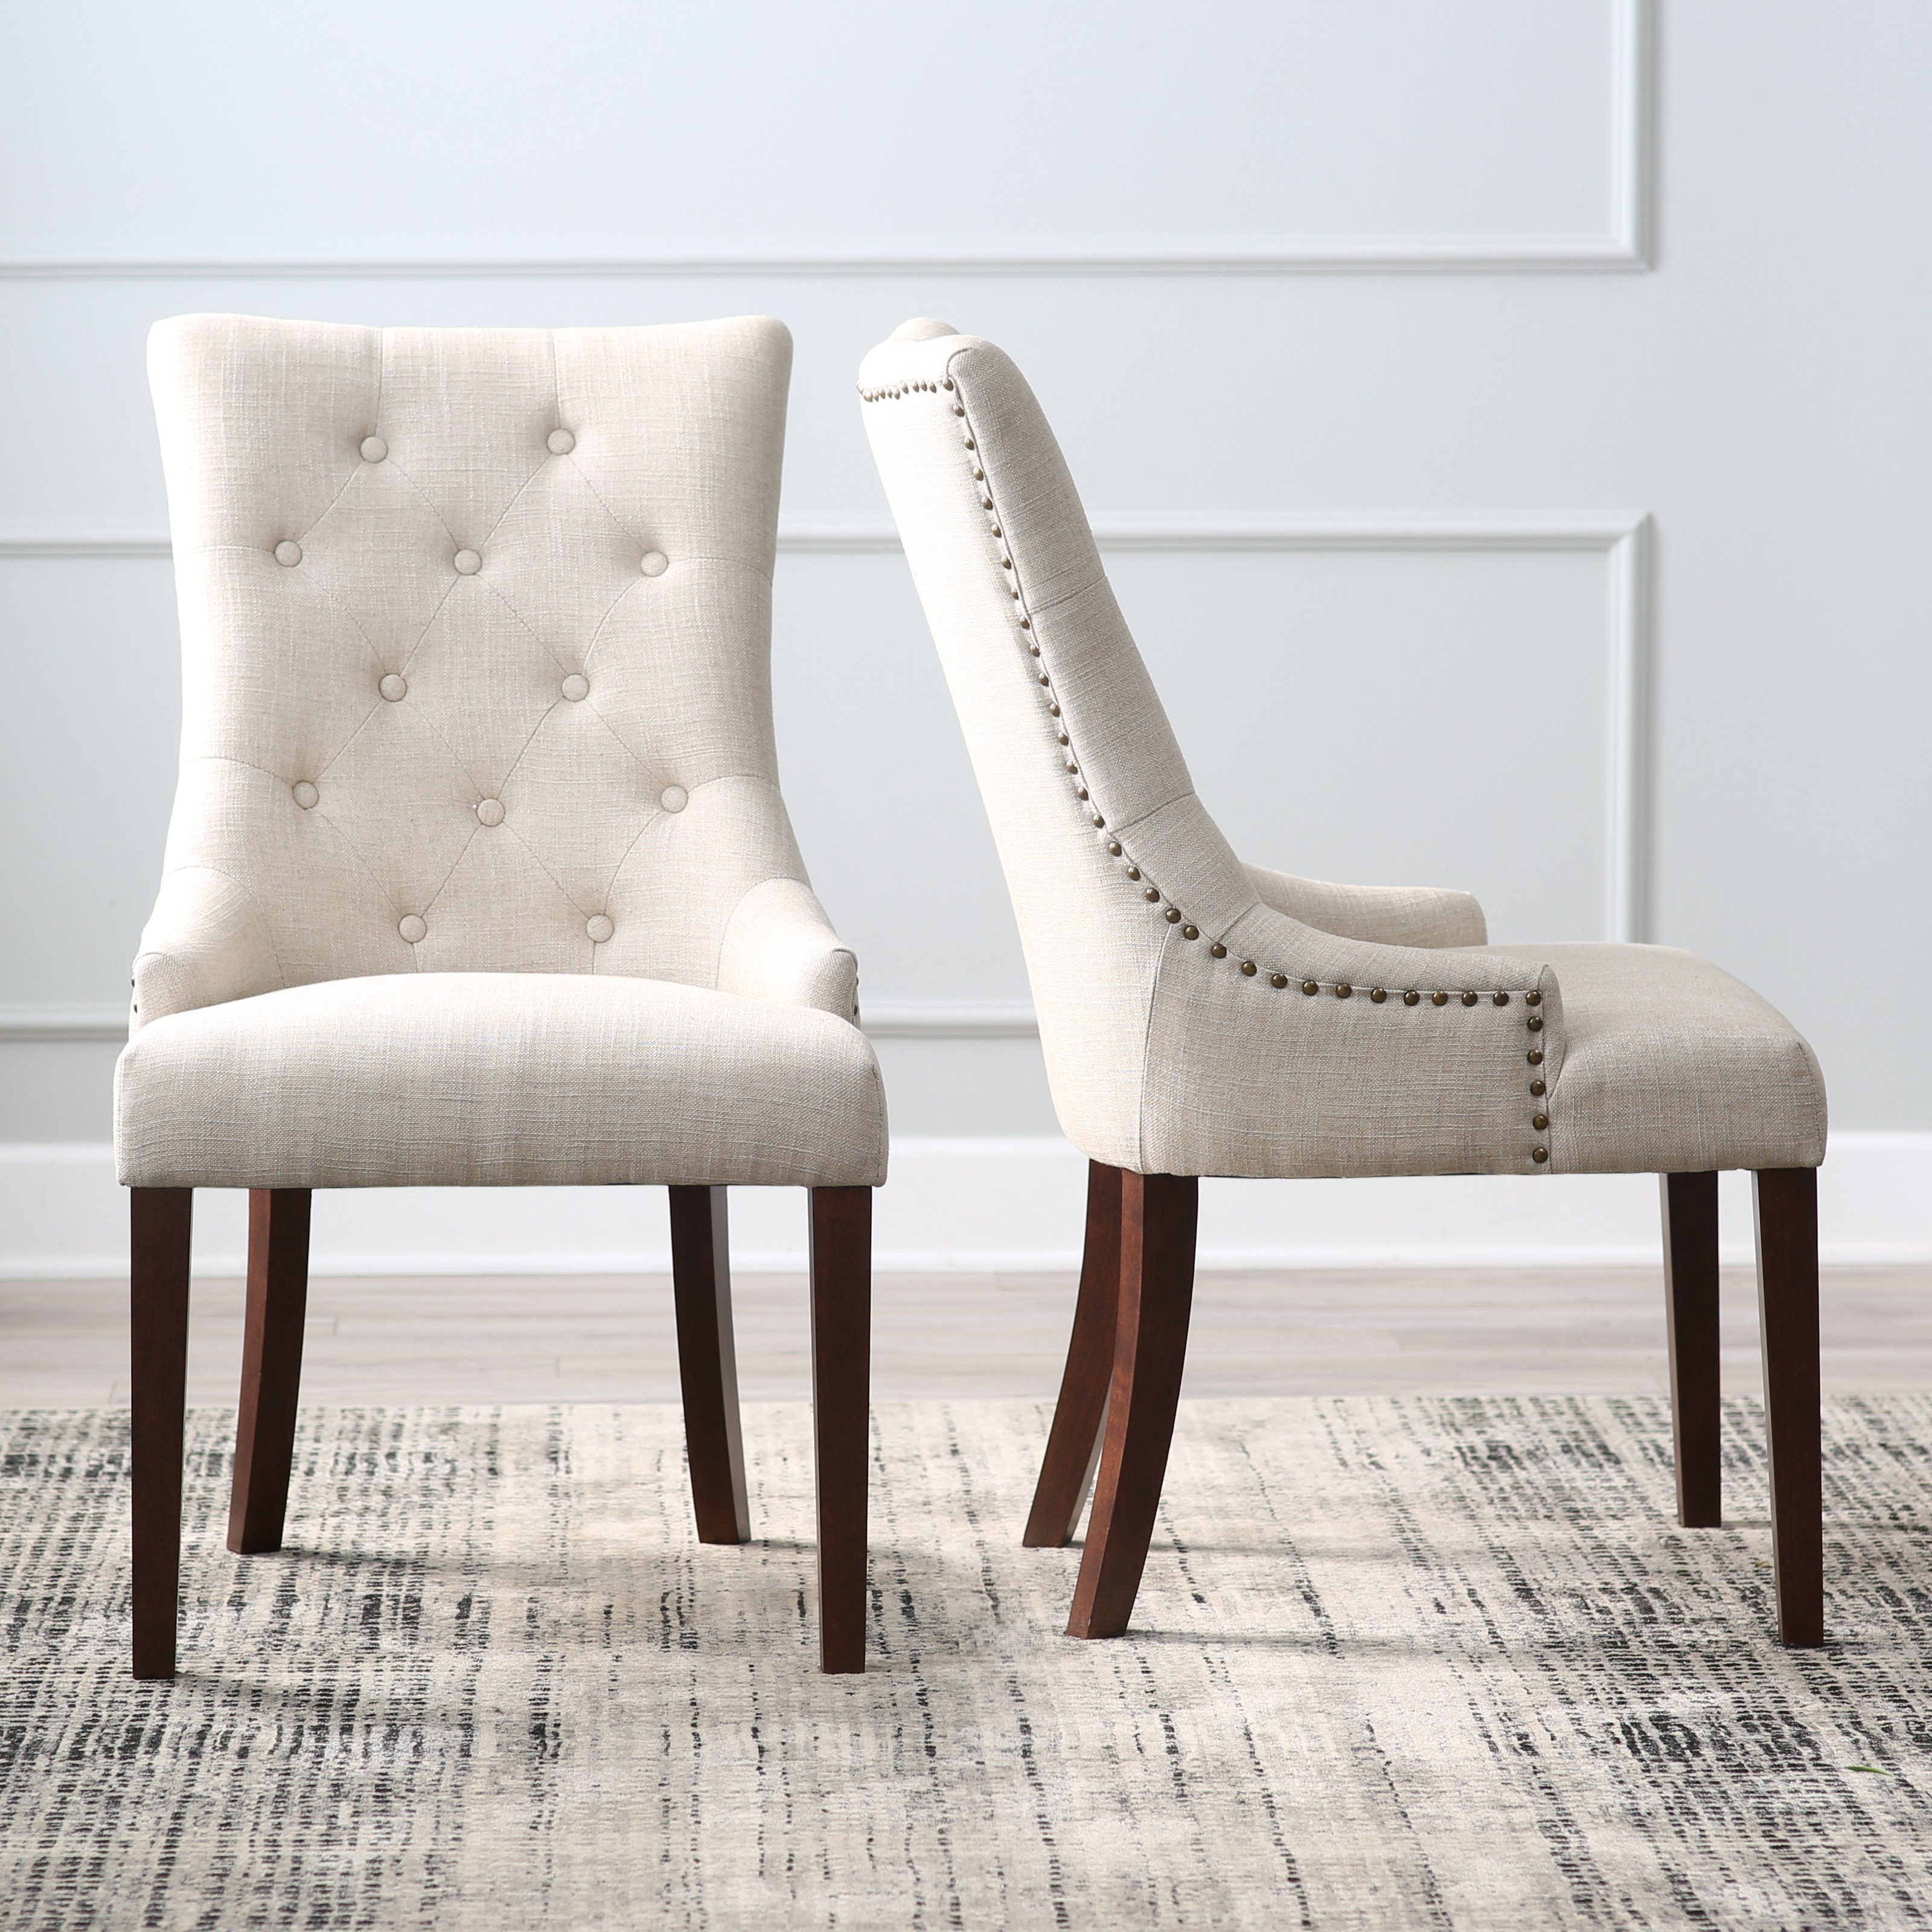 palazzo dining chairs - set of 2 - dining chairs at hayneedle CALXKCH